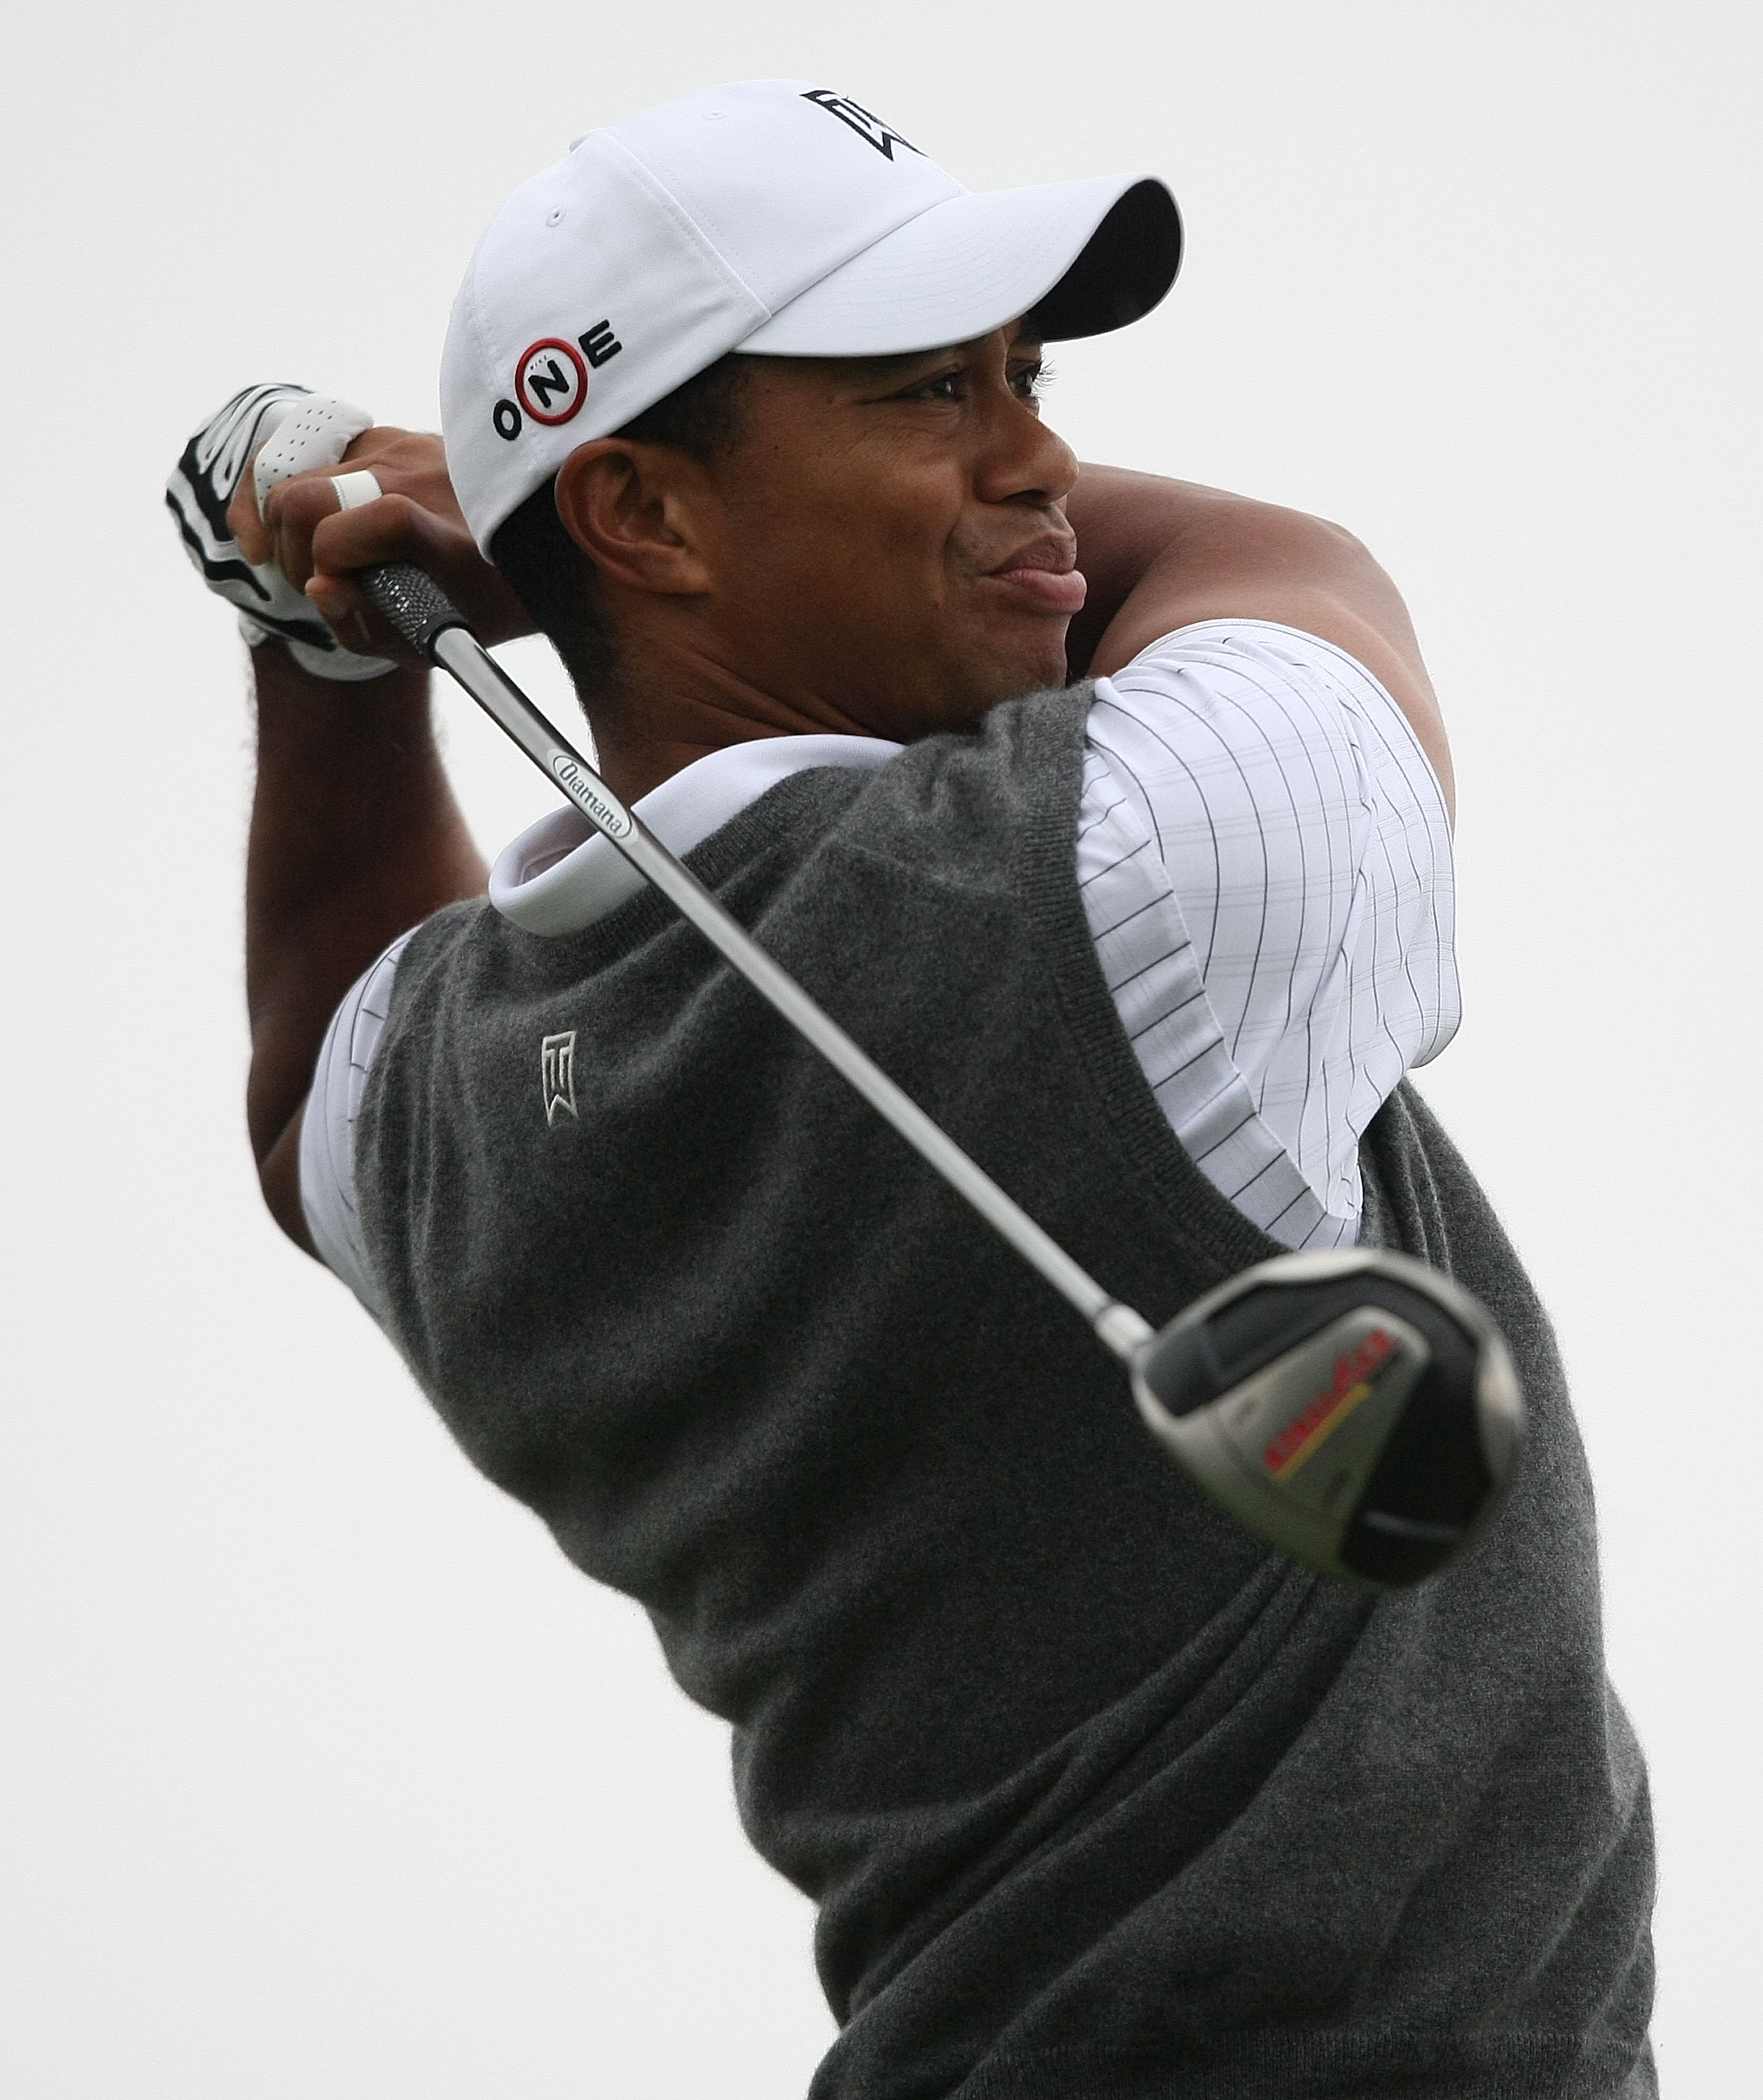 Tiger Woods hits his tee shot on the 15th hole during Round 2 of The Barclays.